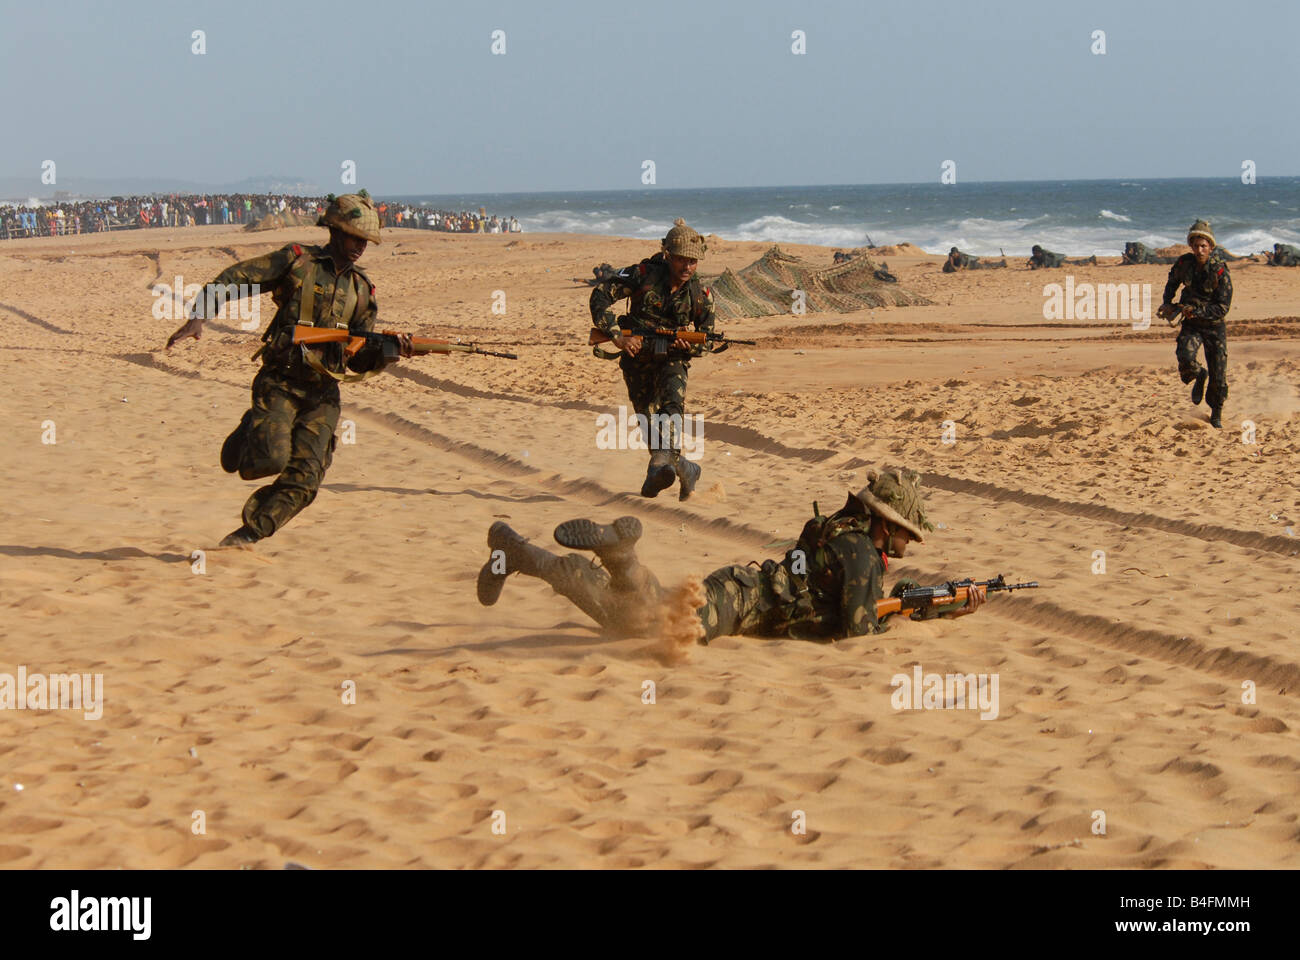 Indian Army demo excercise on an indian beach - Stock Image